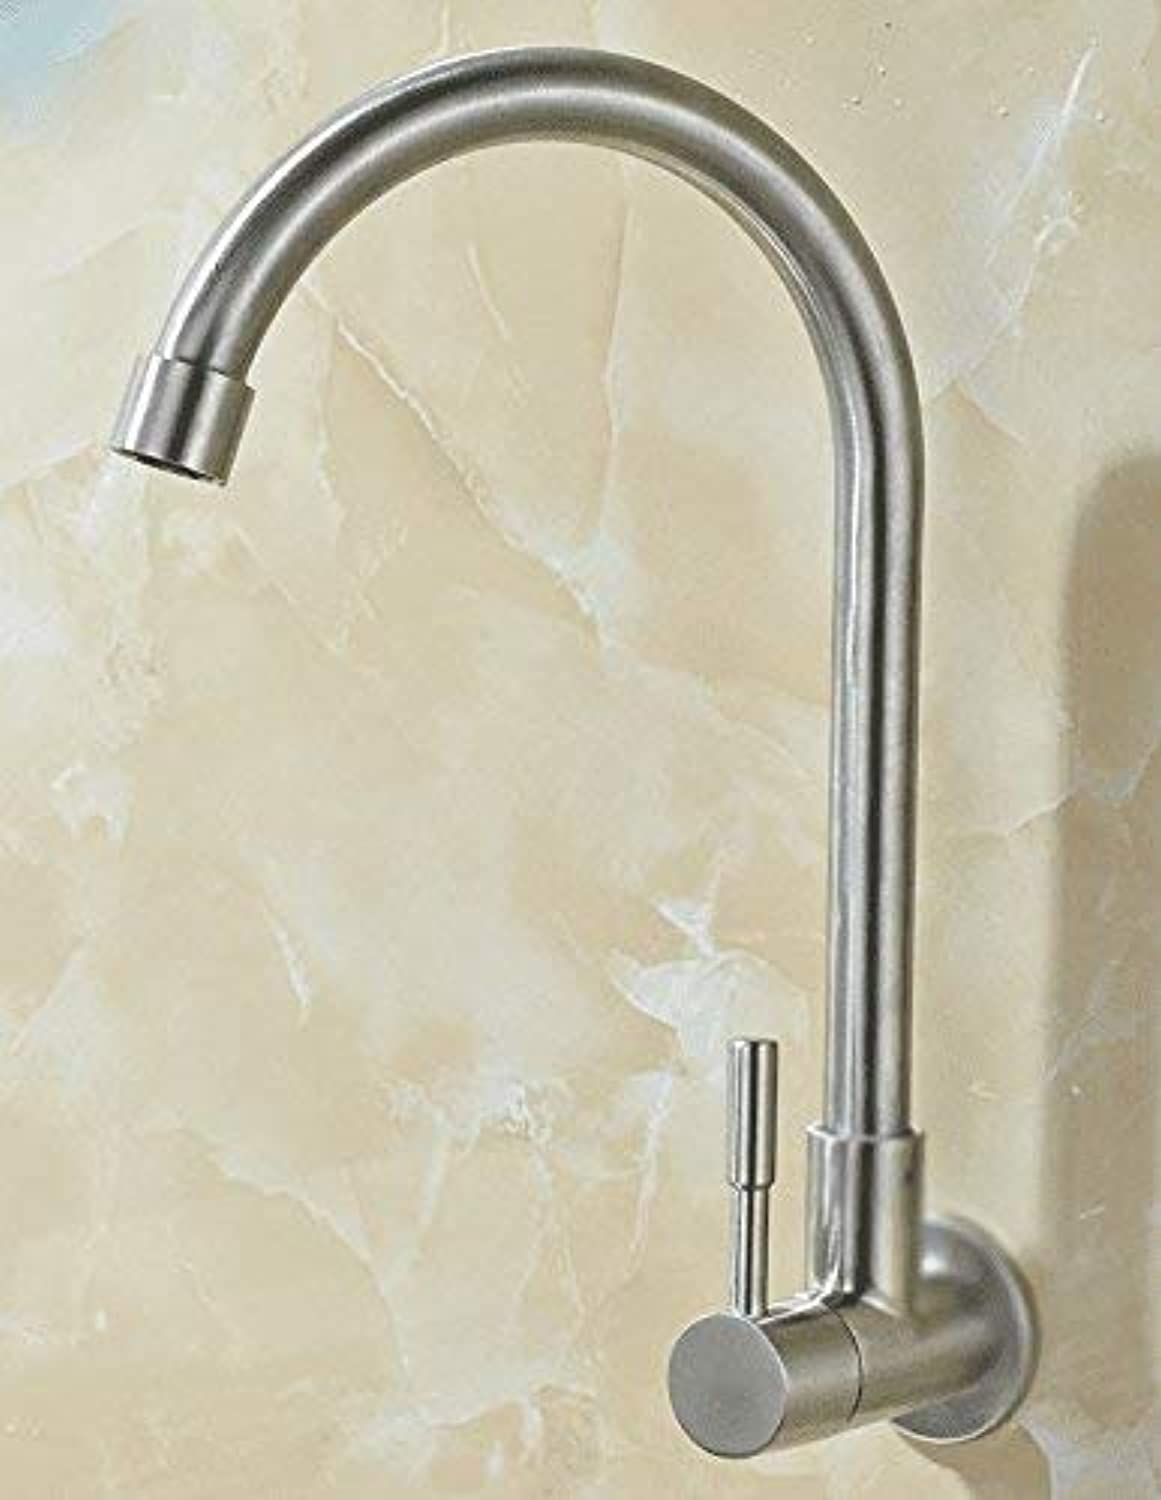 Oudan Sink Taps Into the wall stainless steel Single cold kitchen redating